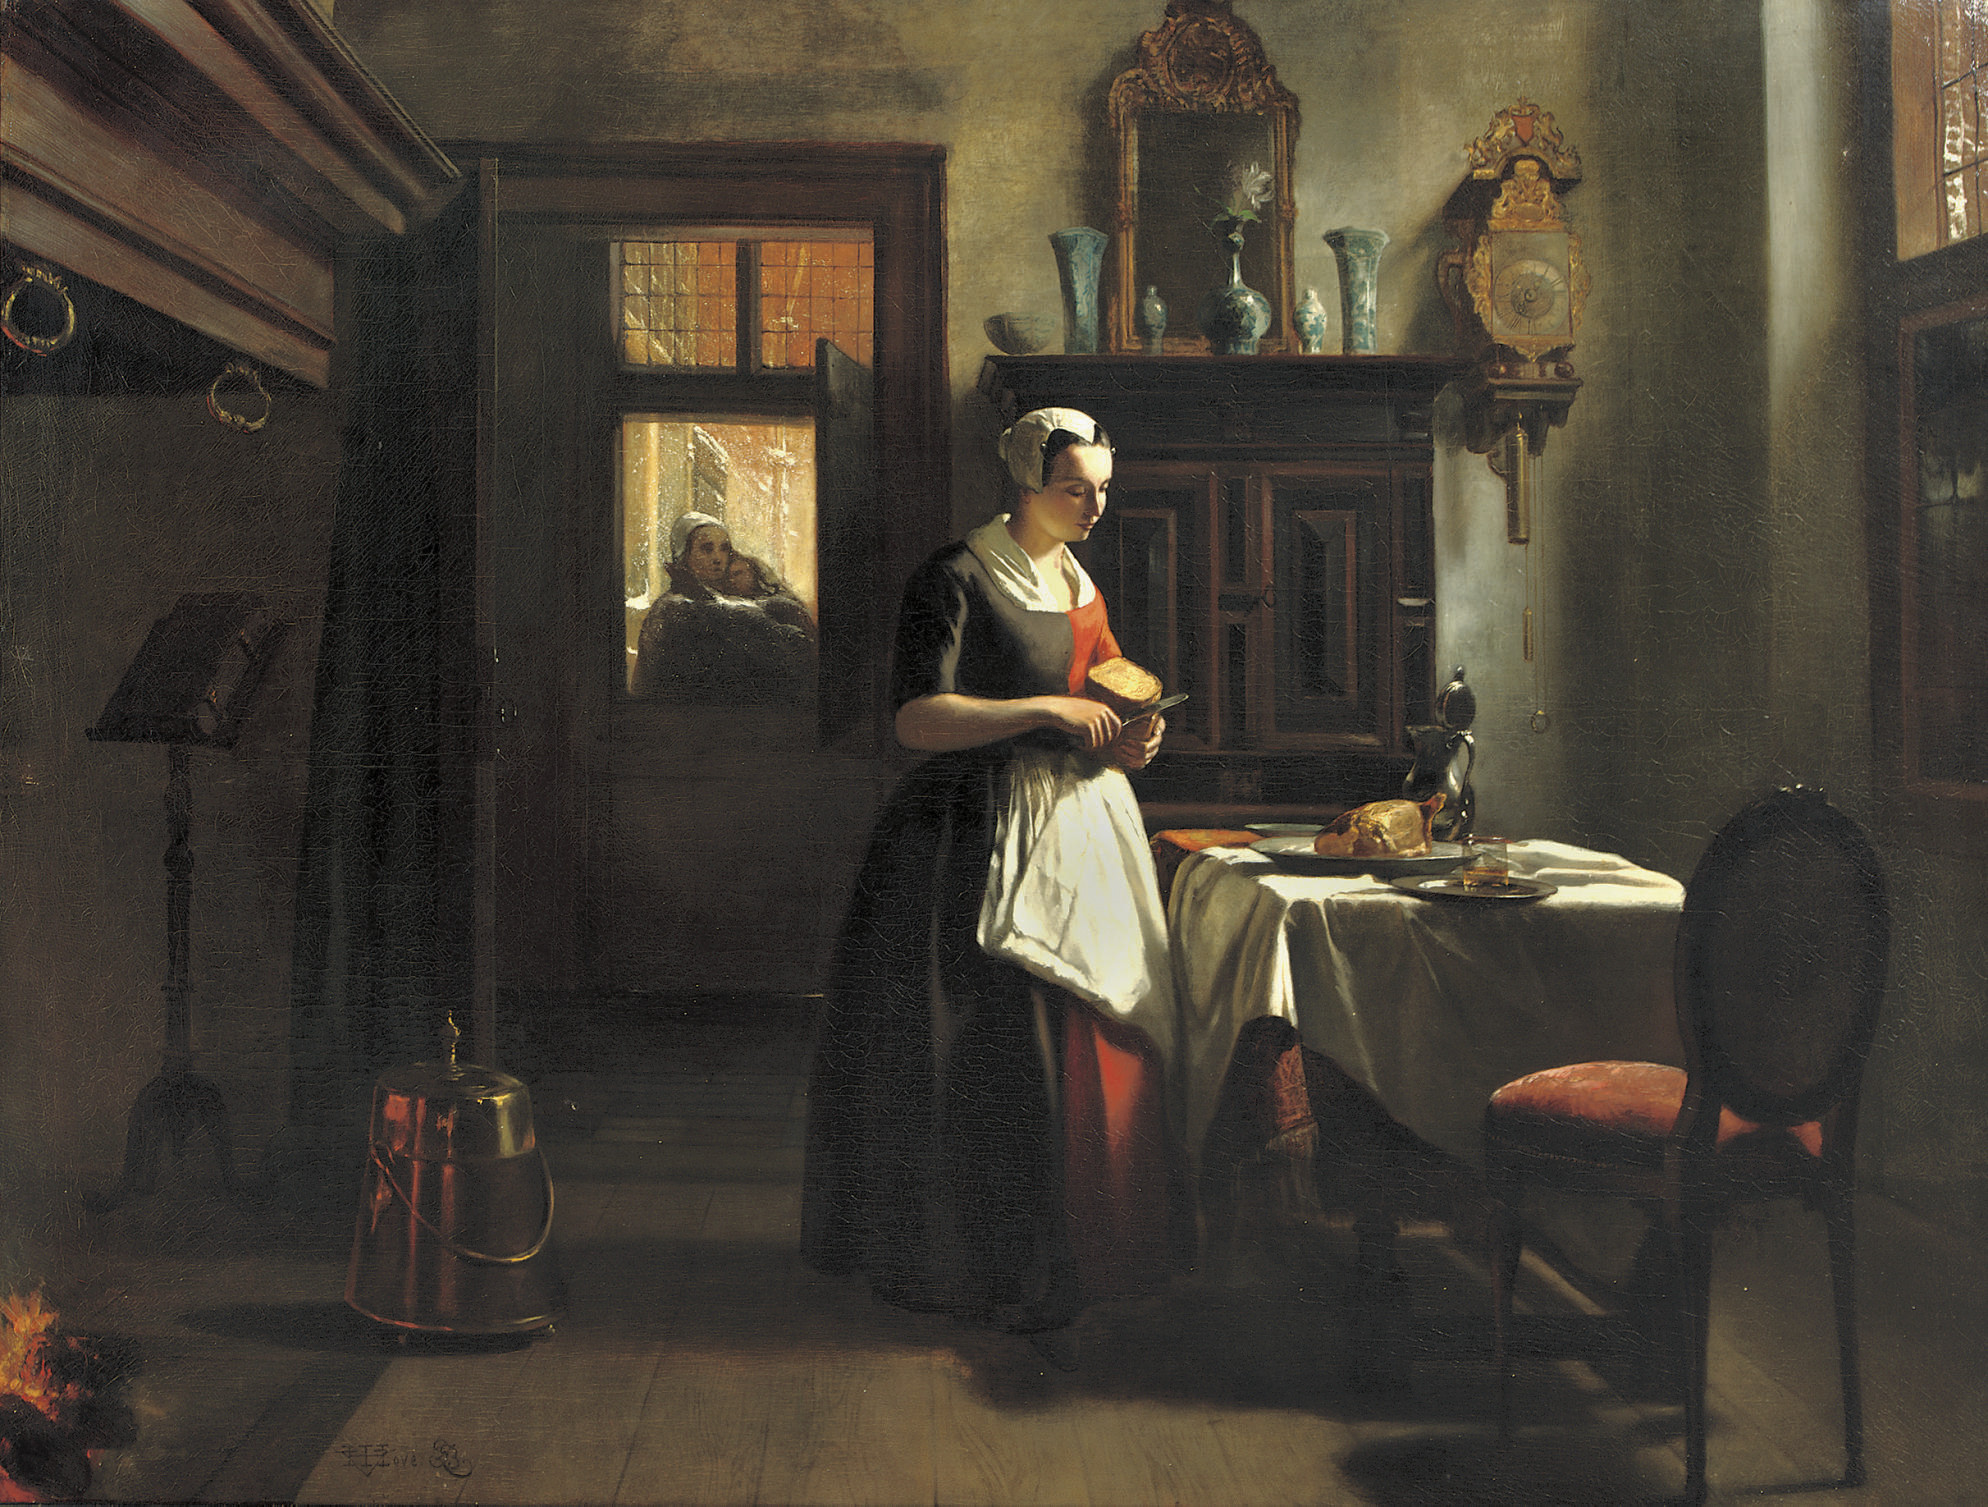 An Amsterdam orphan girl preparing supper